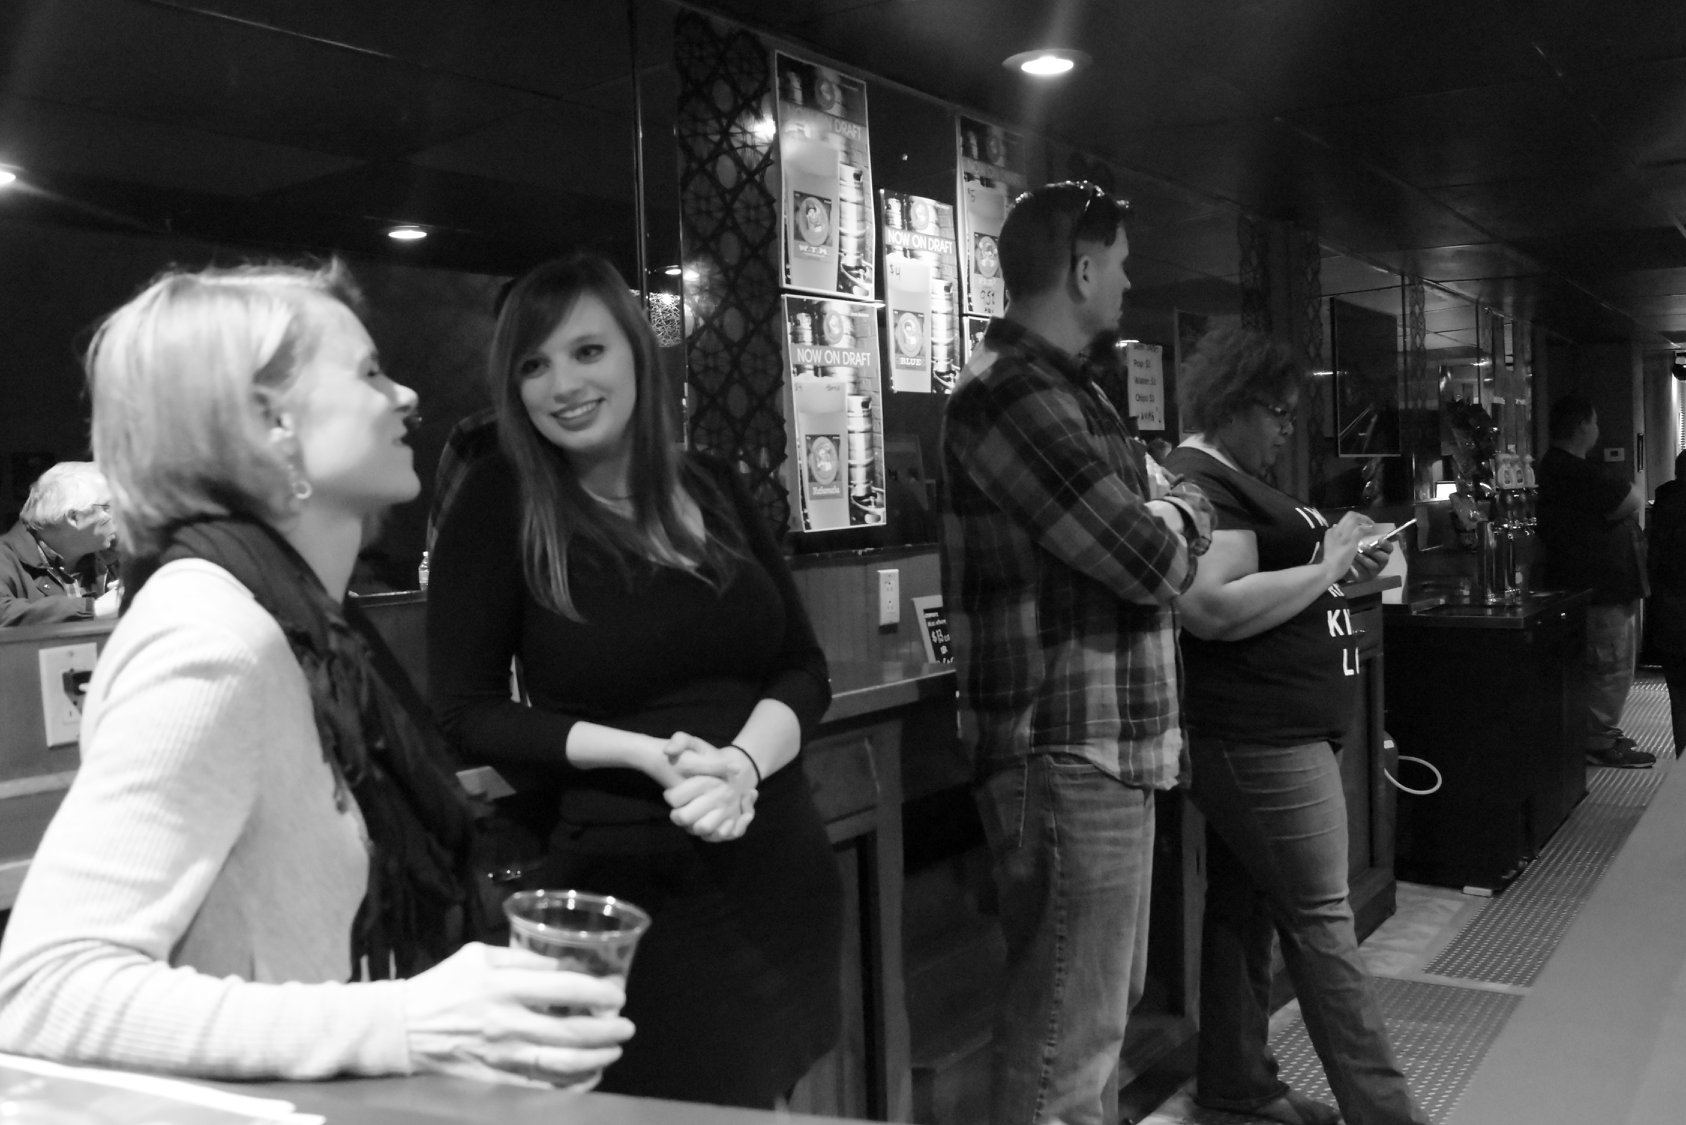 Akron residents enjoy a night out at the Live Music Now! pop-up space.